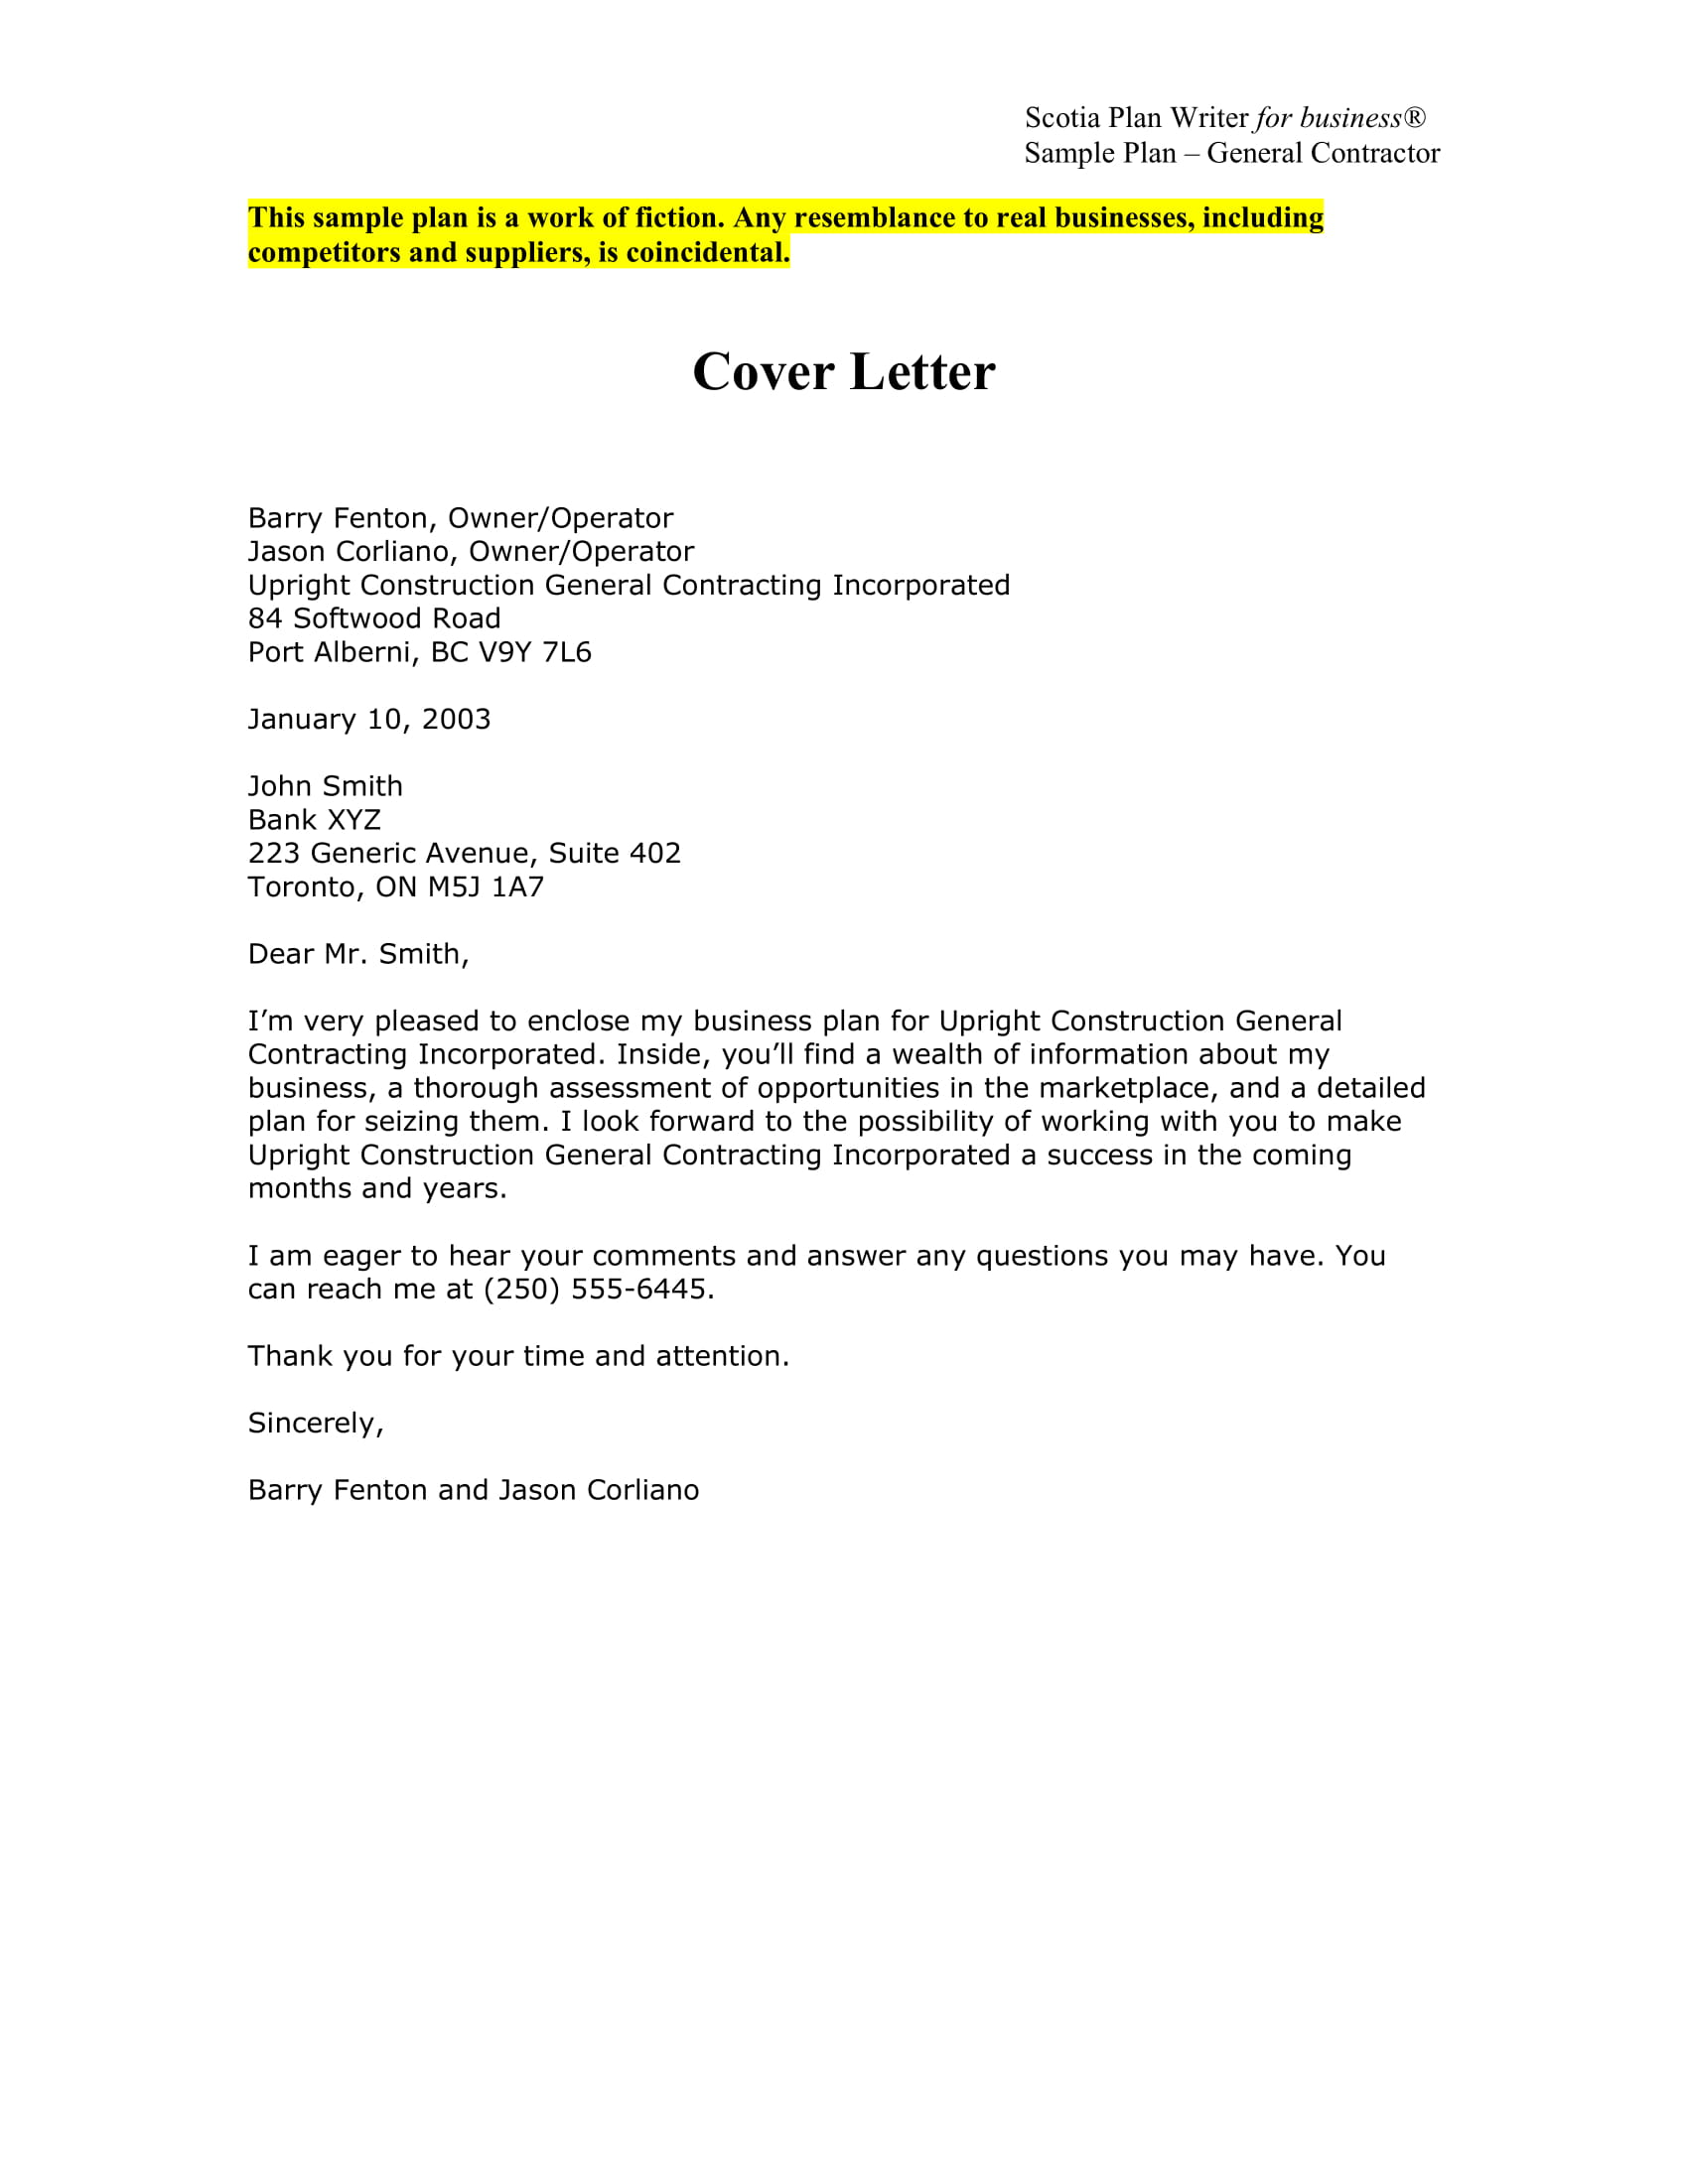 proposal cover letter sample   Nadi.palmex.co